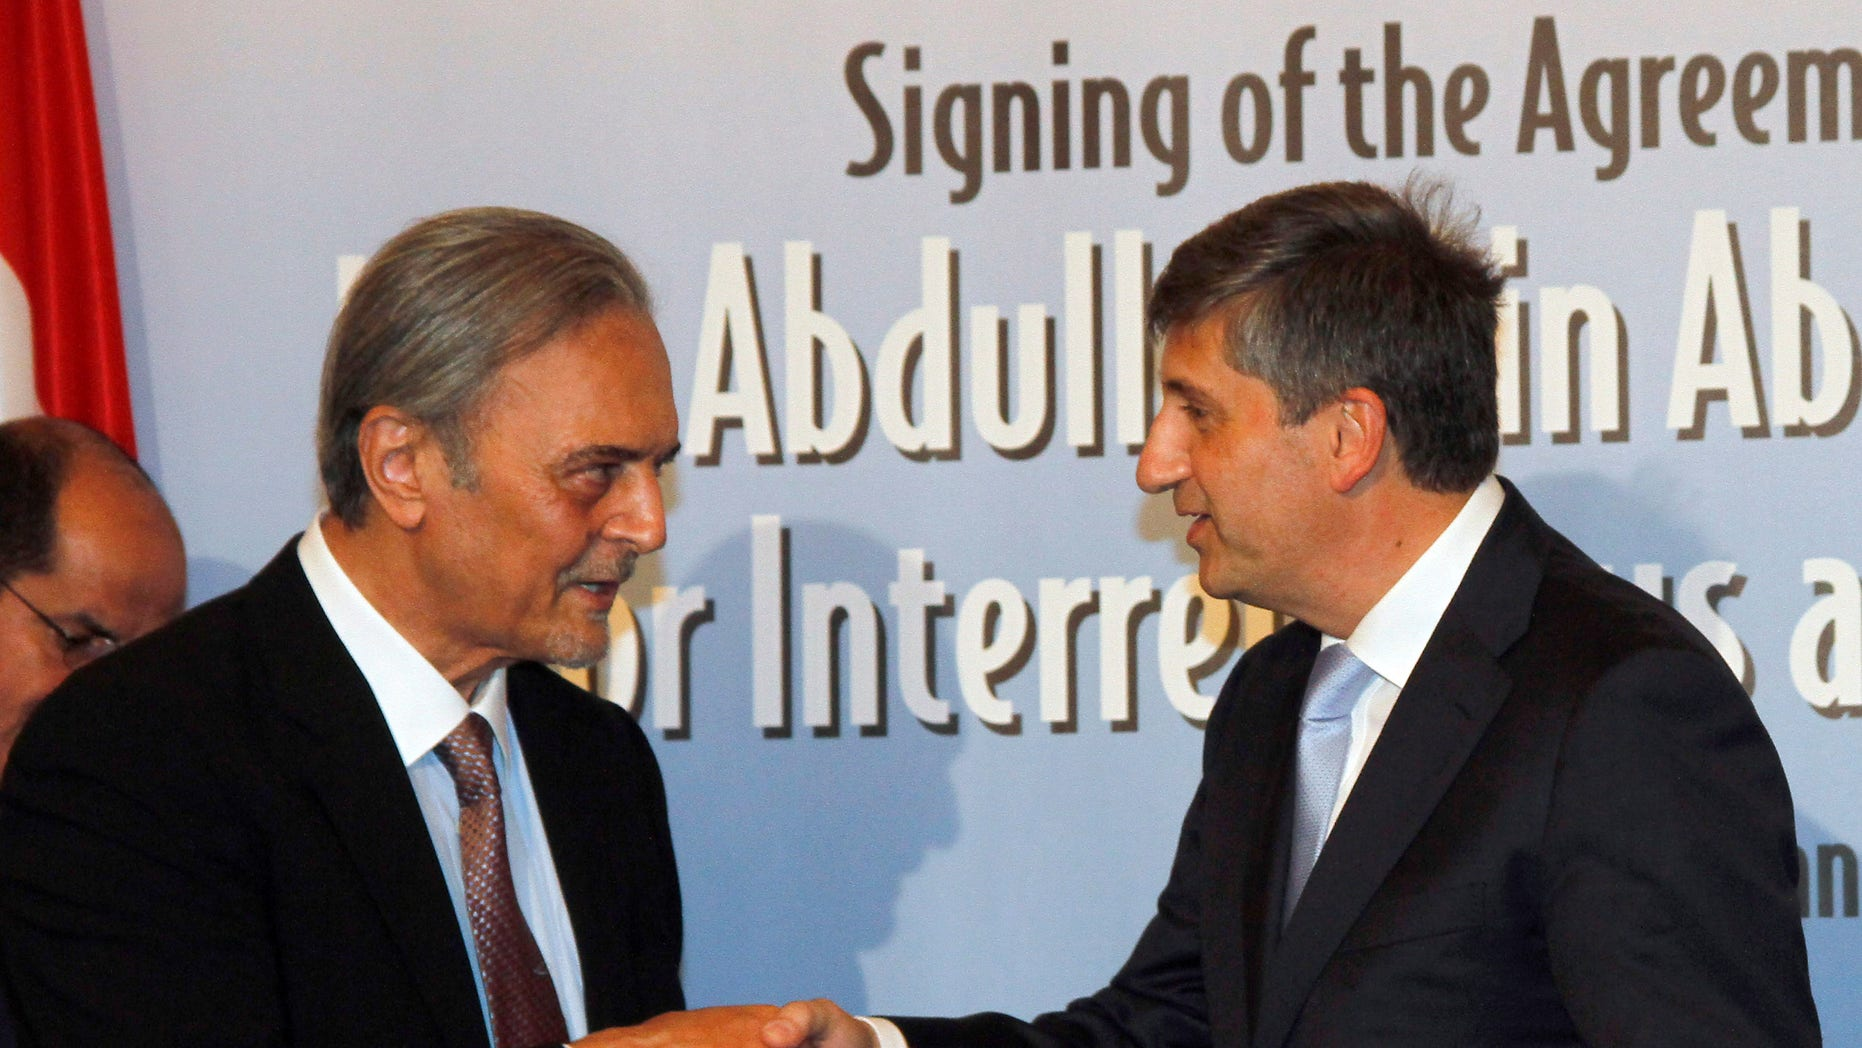 Saudi Arabia's Foreign Minister Prince Saud al-Faisal bin Abdulaziz Al Saud exchanges documents with his Austrian counterpart Michael Spindelegger, from left, after signing the agreement for the establishment of the King Abdullah Bin Abdulaziz International Center for Interreligious and Intercultural Dialogue, KAICID, in Vienna, Austria, Thursday, Oct. 13, 2011.